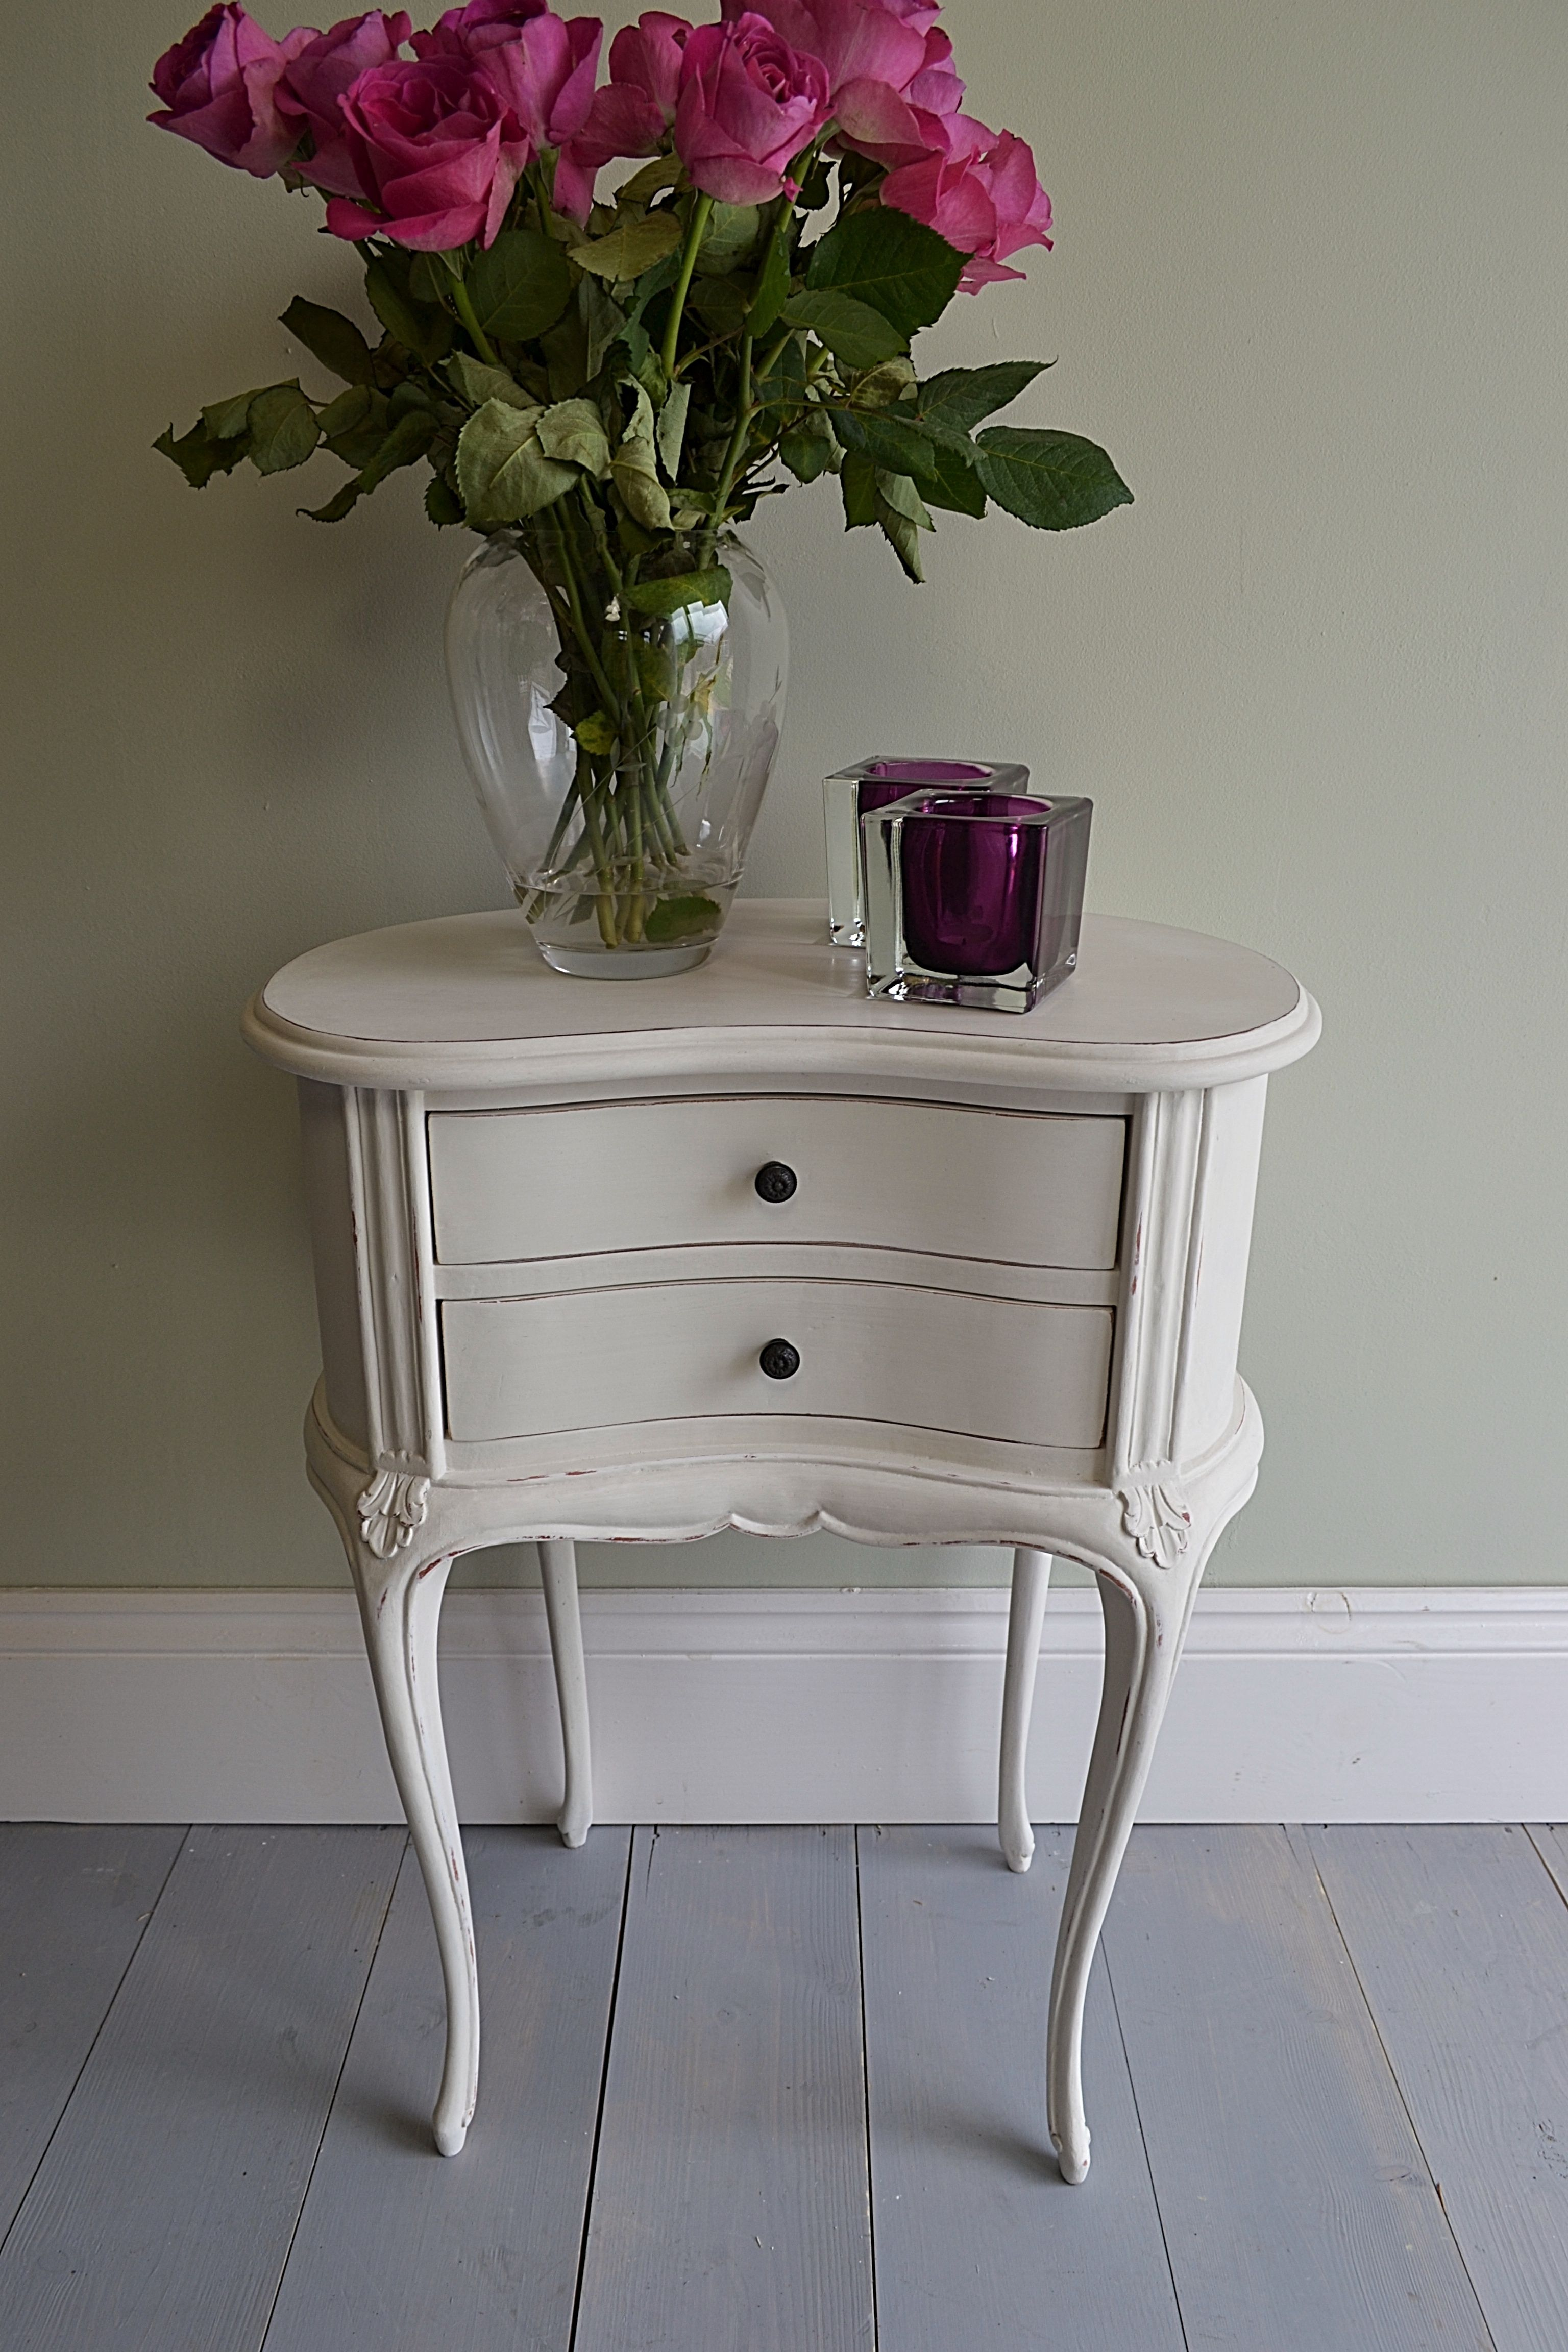 This French style bedside table is beautifully elegant